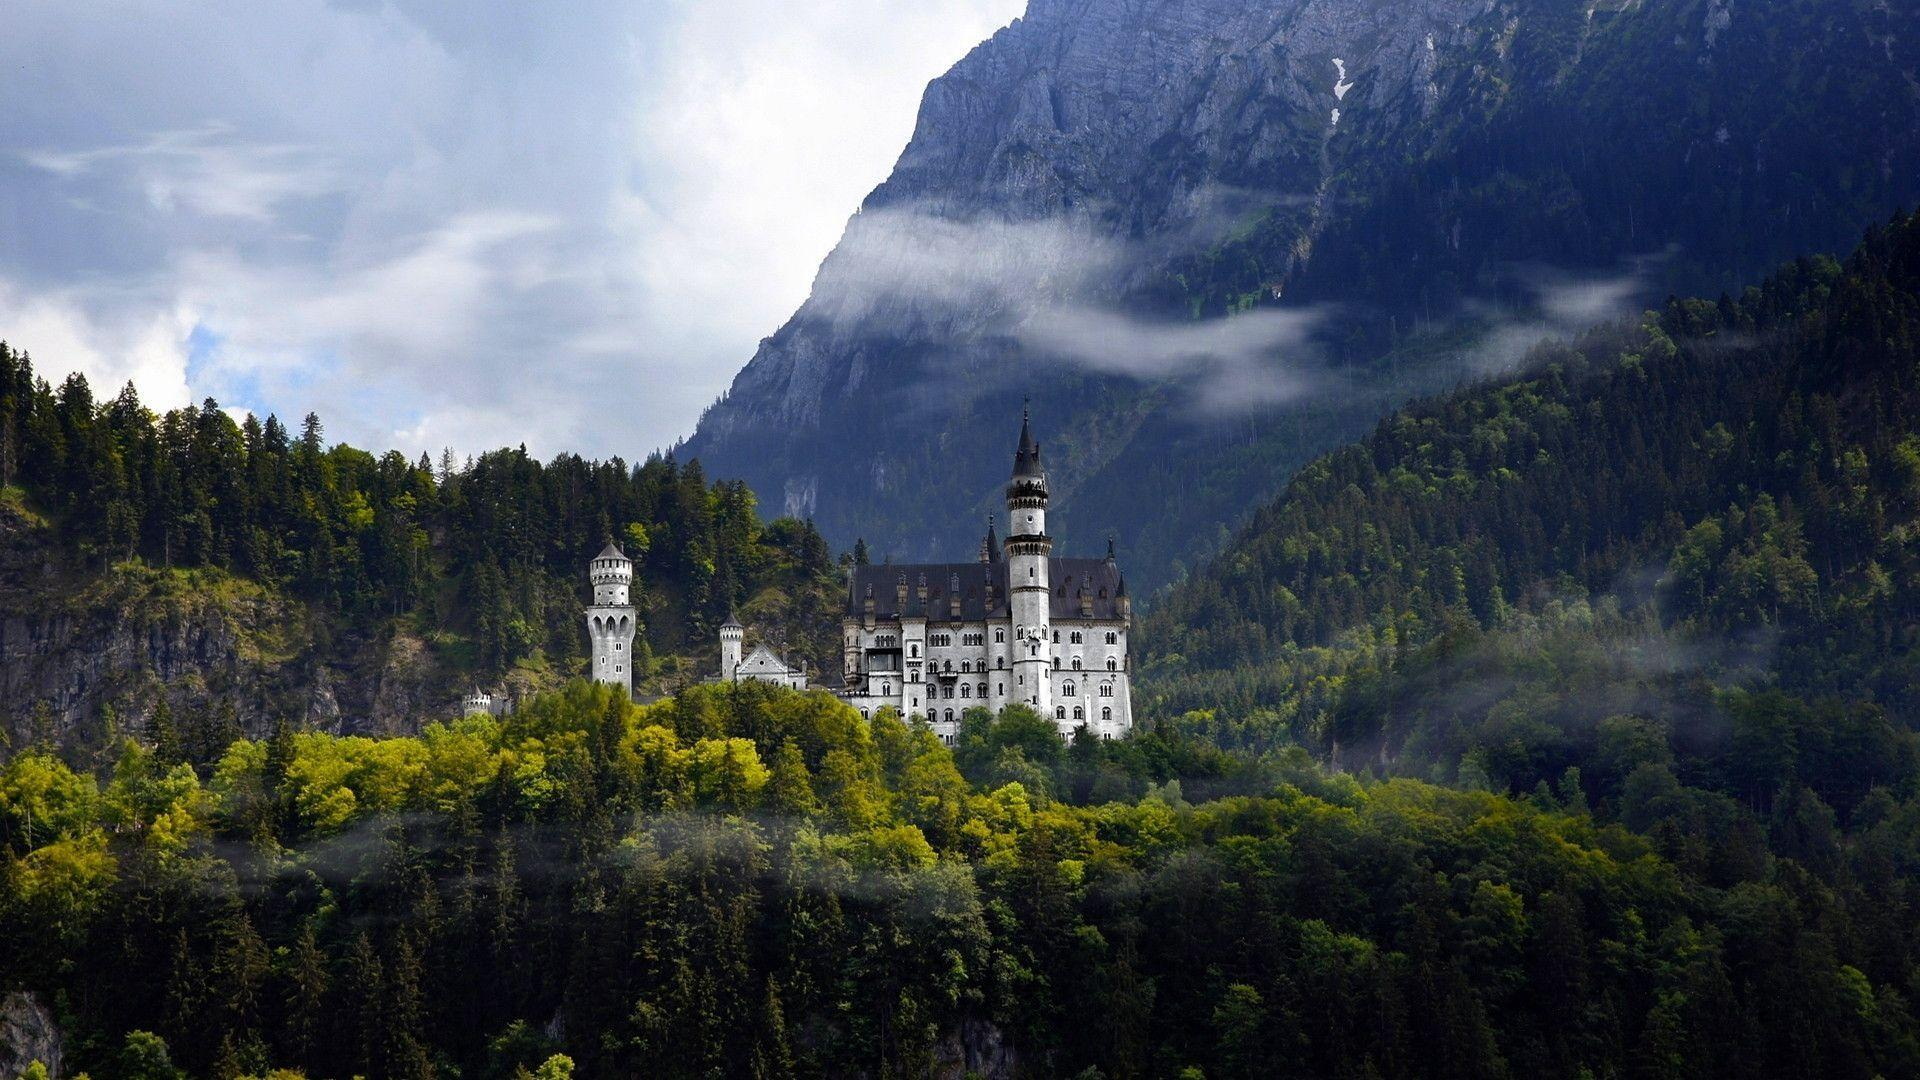 Neuschwanstein Castle 1920x1080 World Wallpaper - #